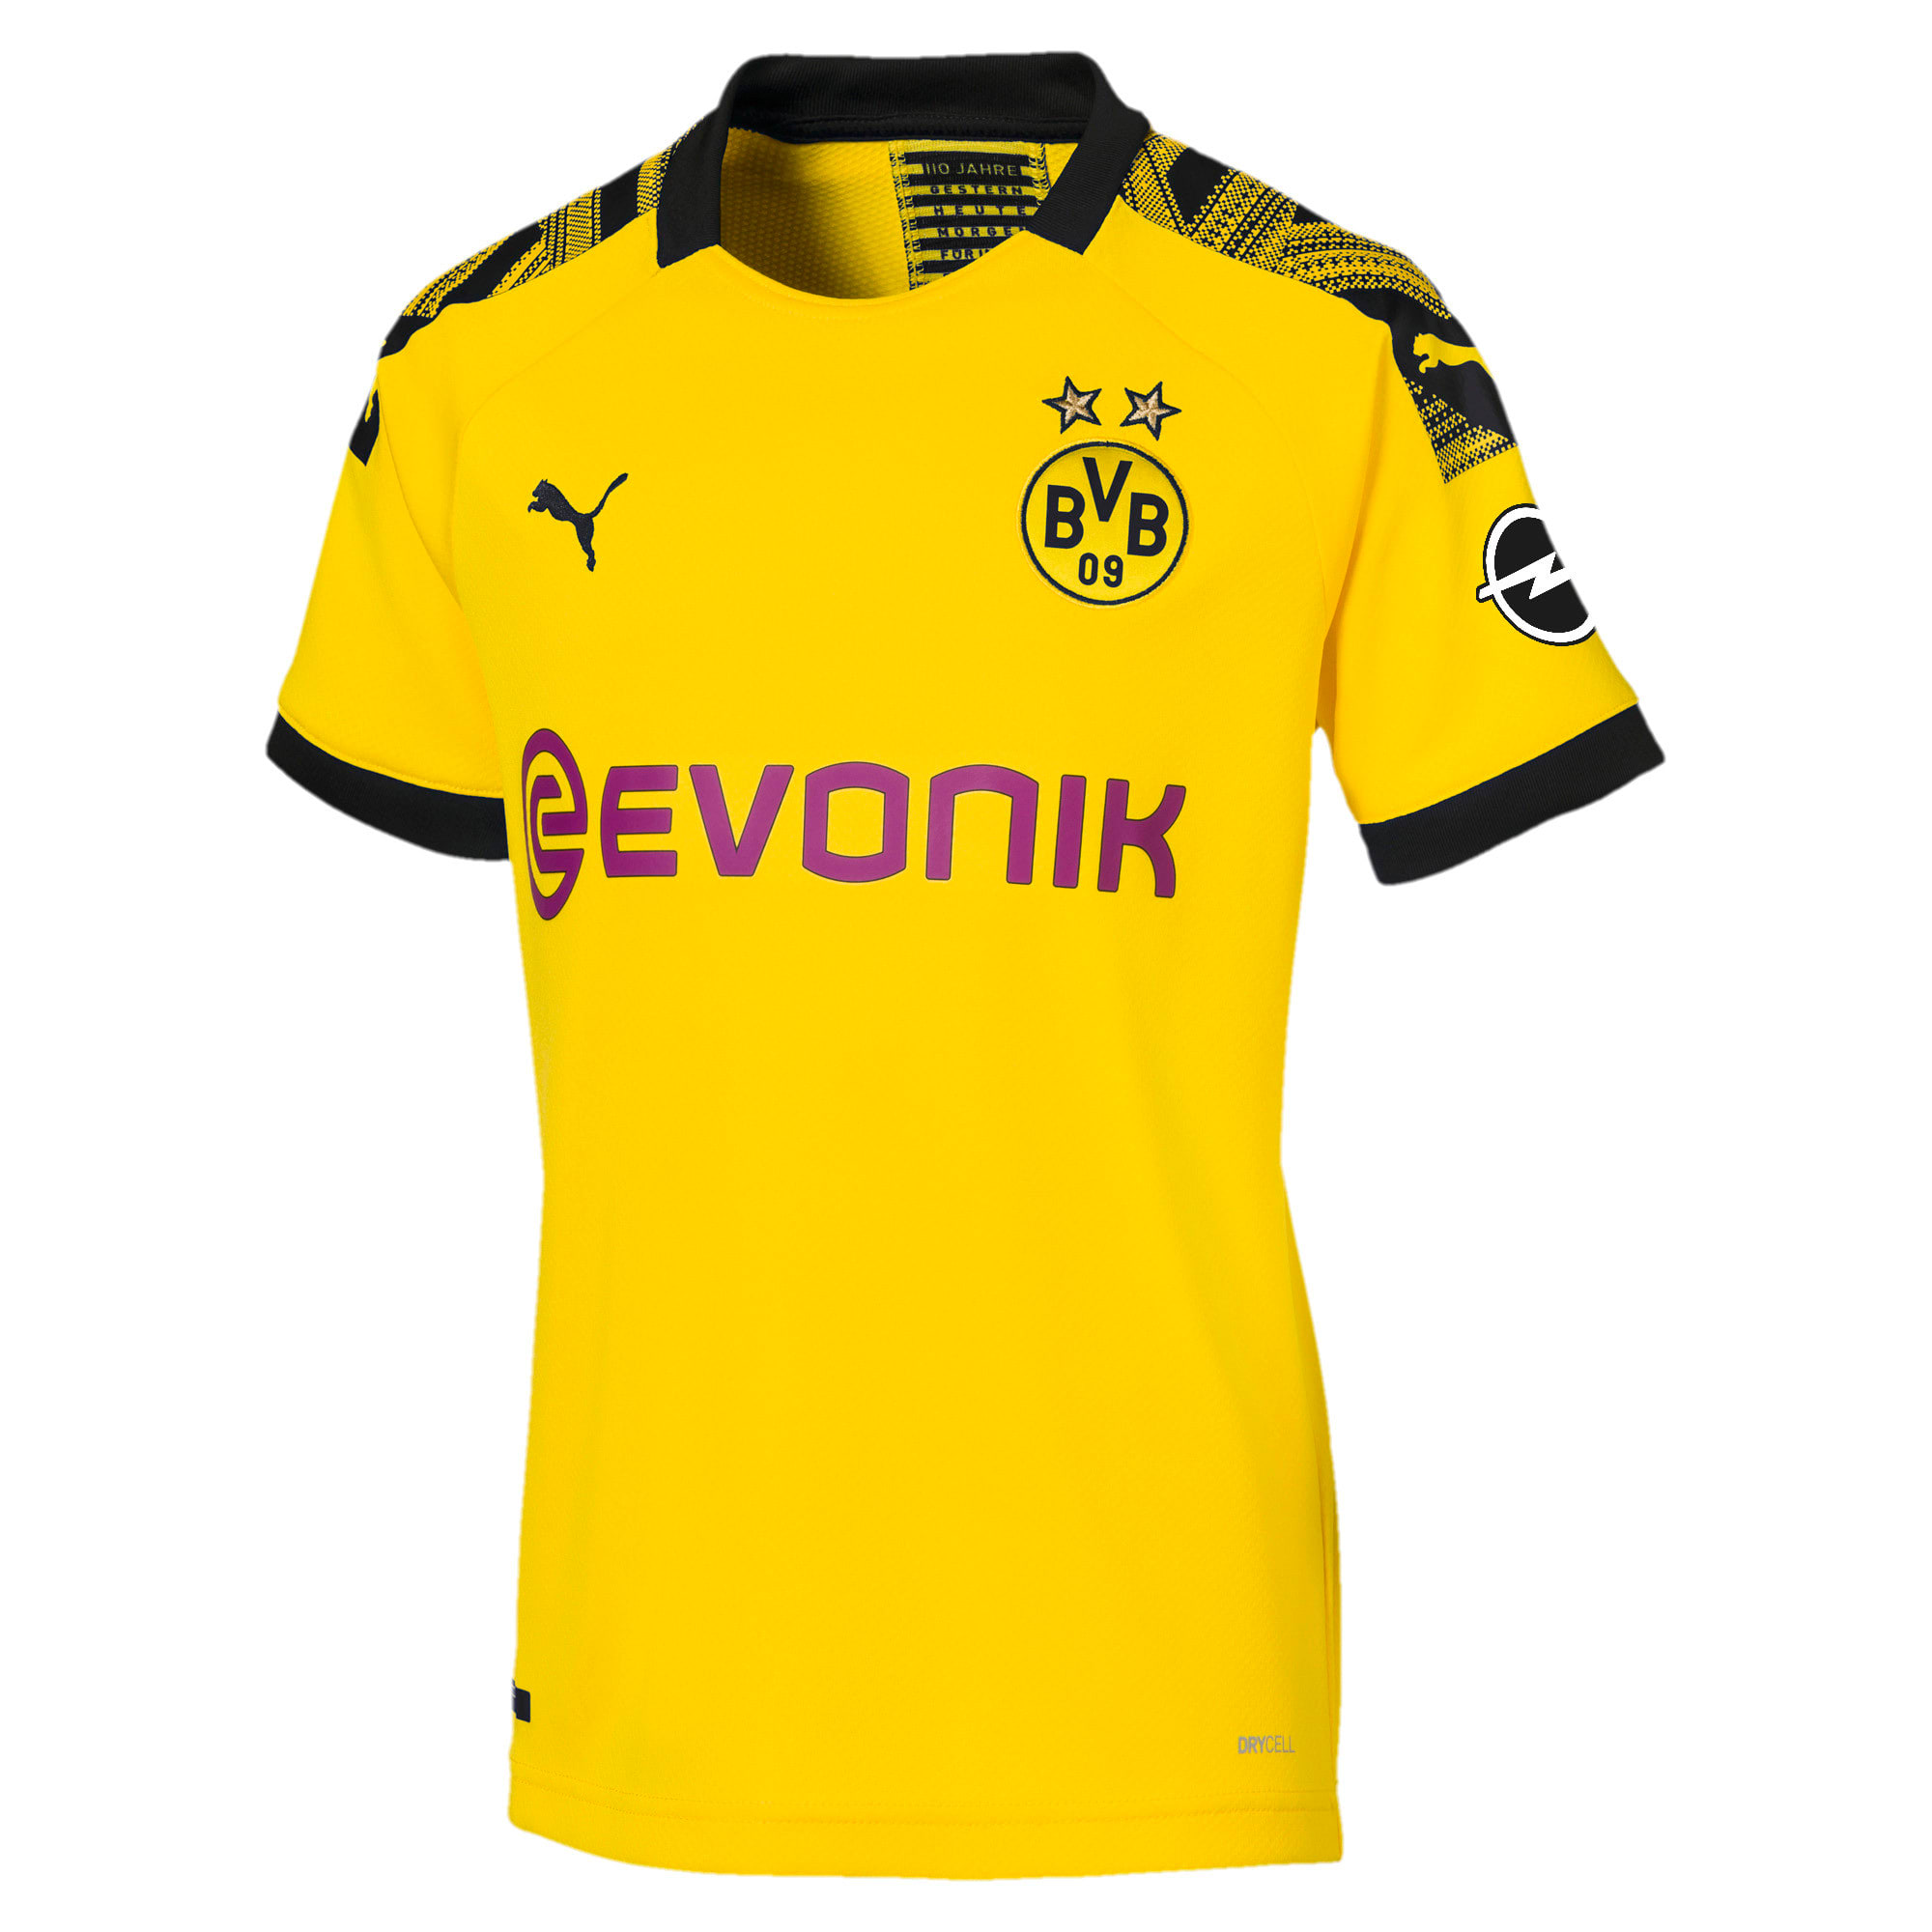 Thumbnail 1 of BVB Women's Home Replica Jersey, Cyber Yellow-Puma Black, medium